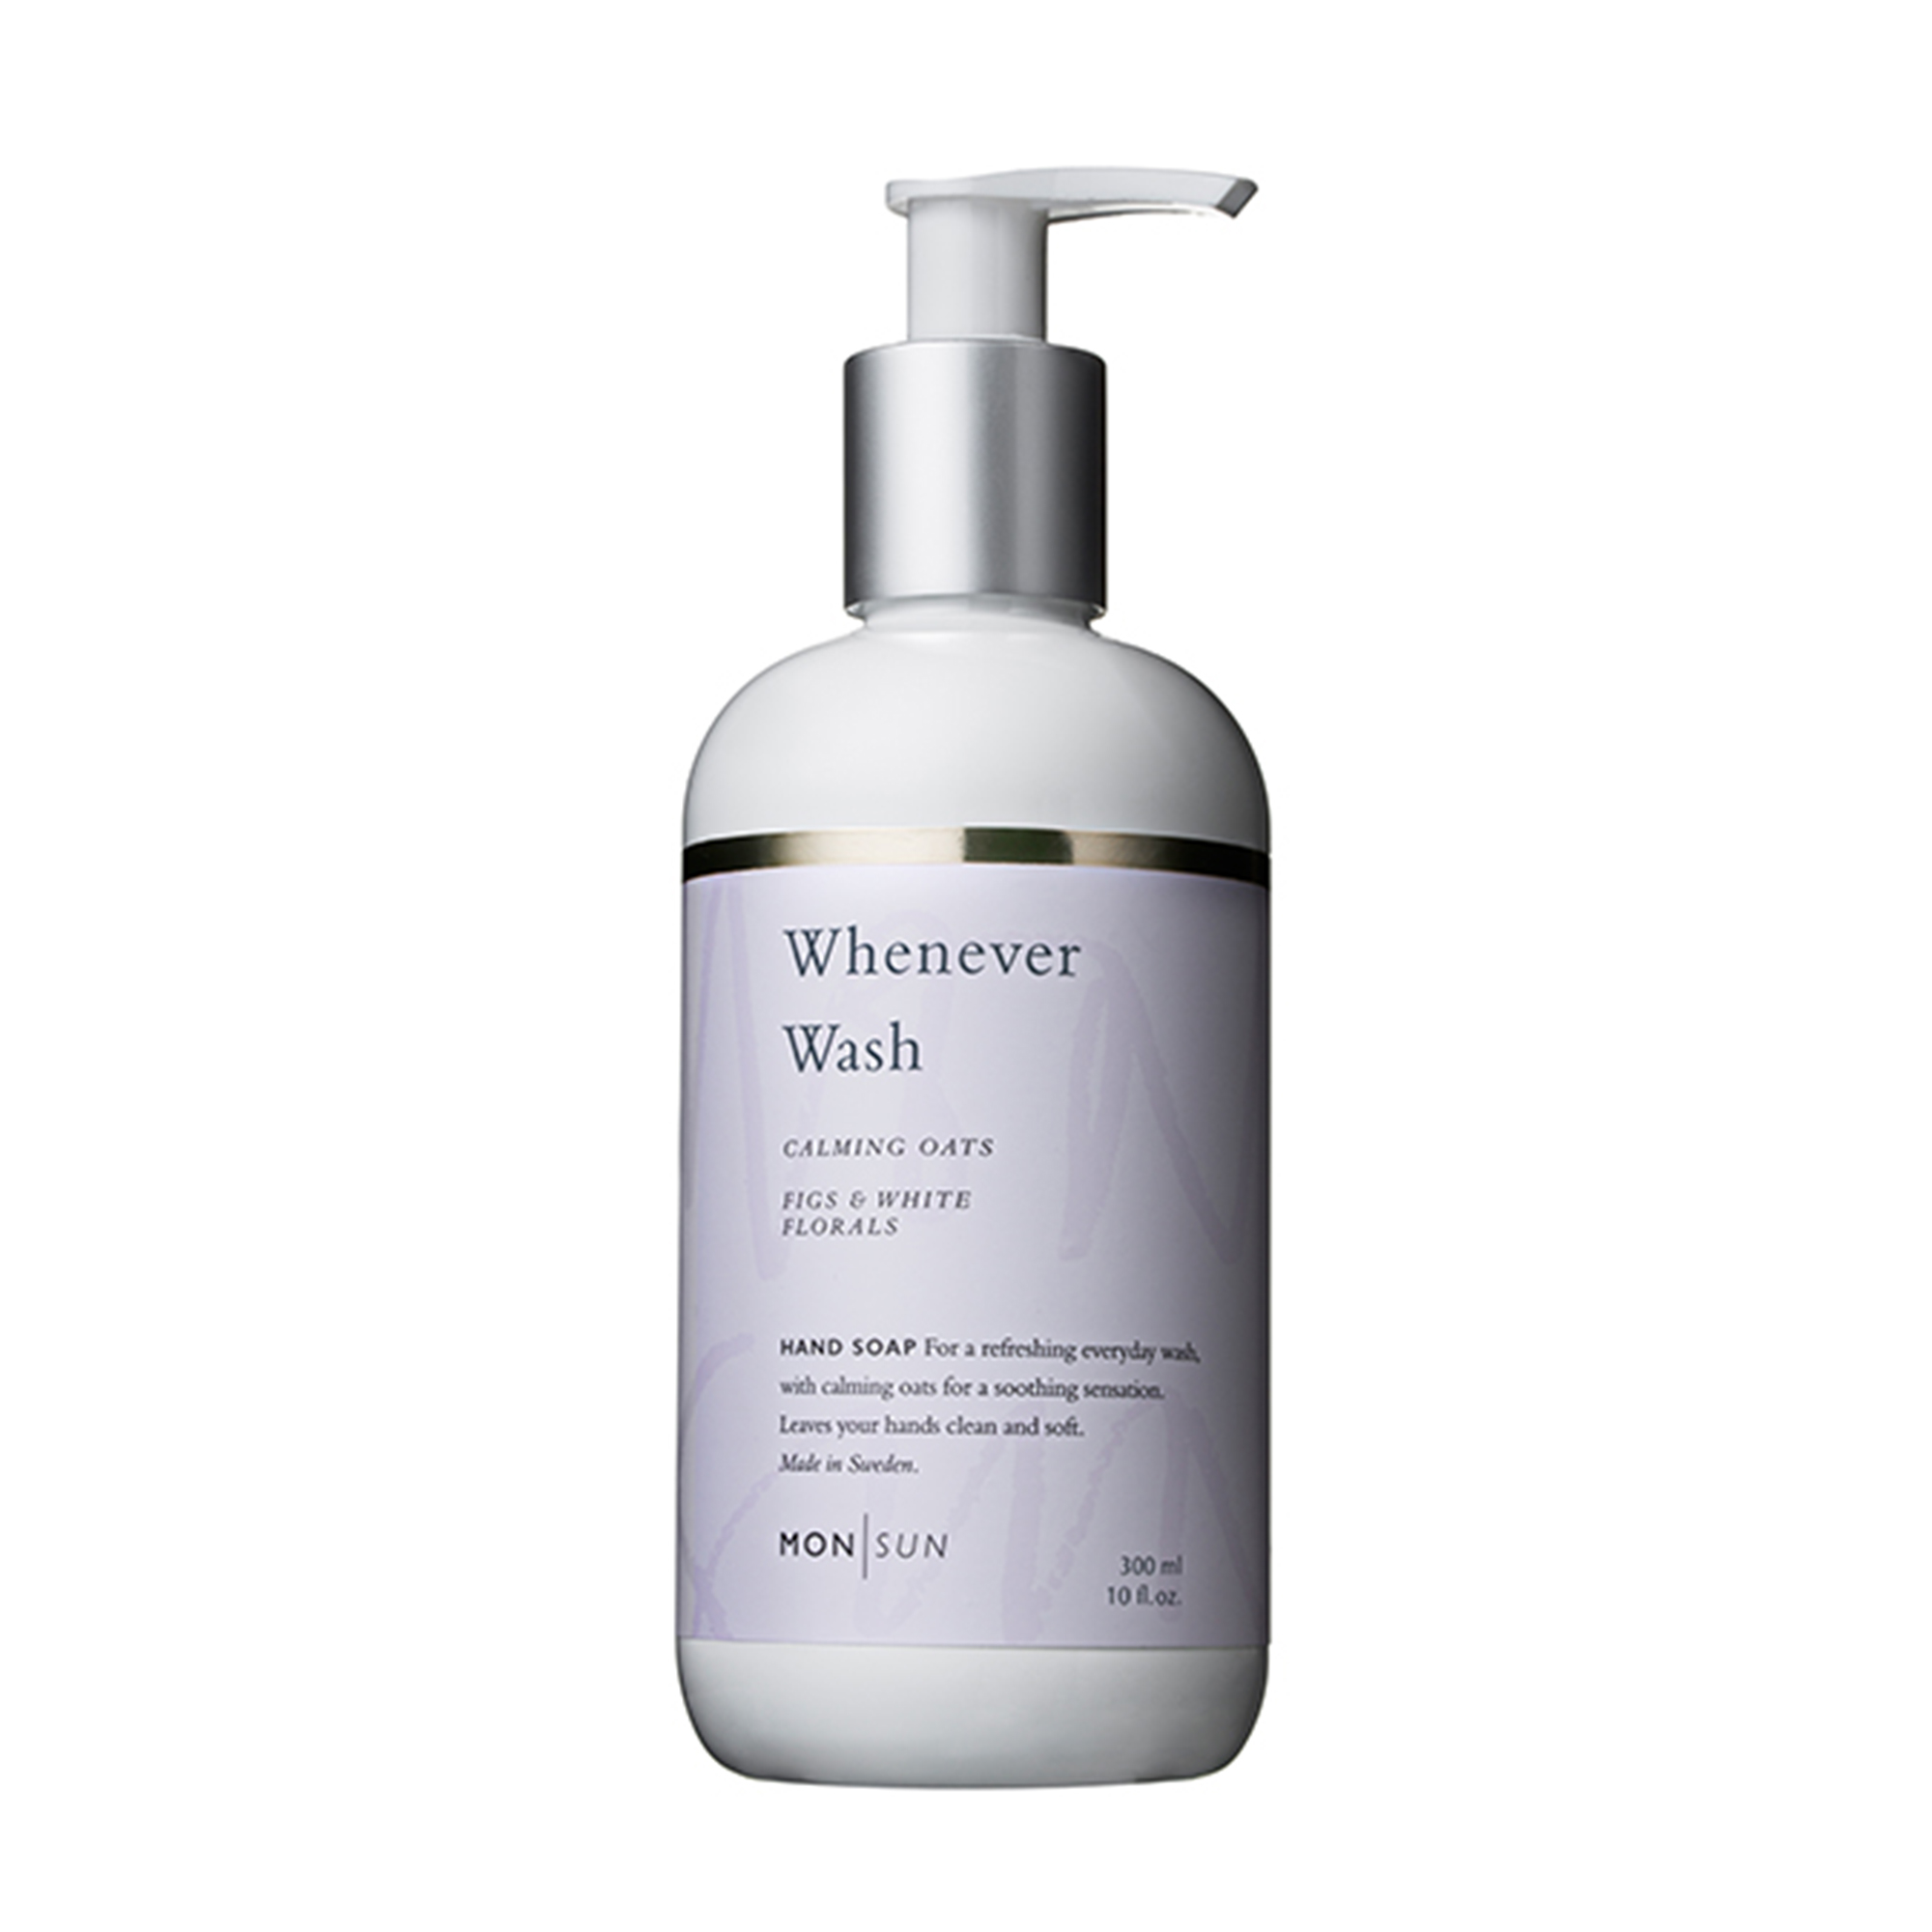 Whenever Wash & Calming Oats Hand Soap 300ml